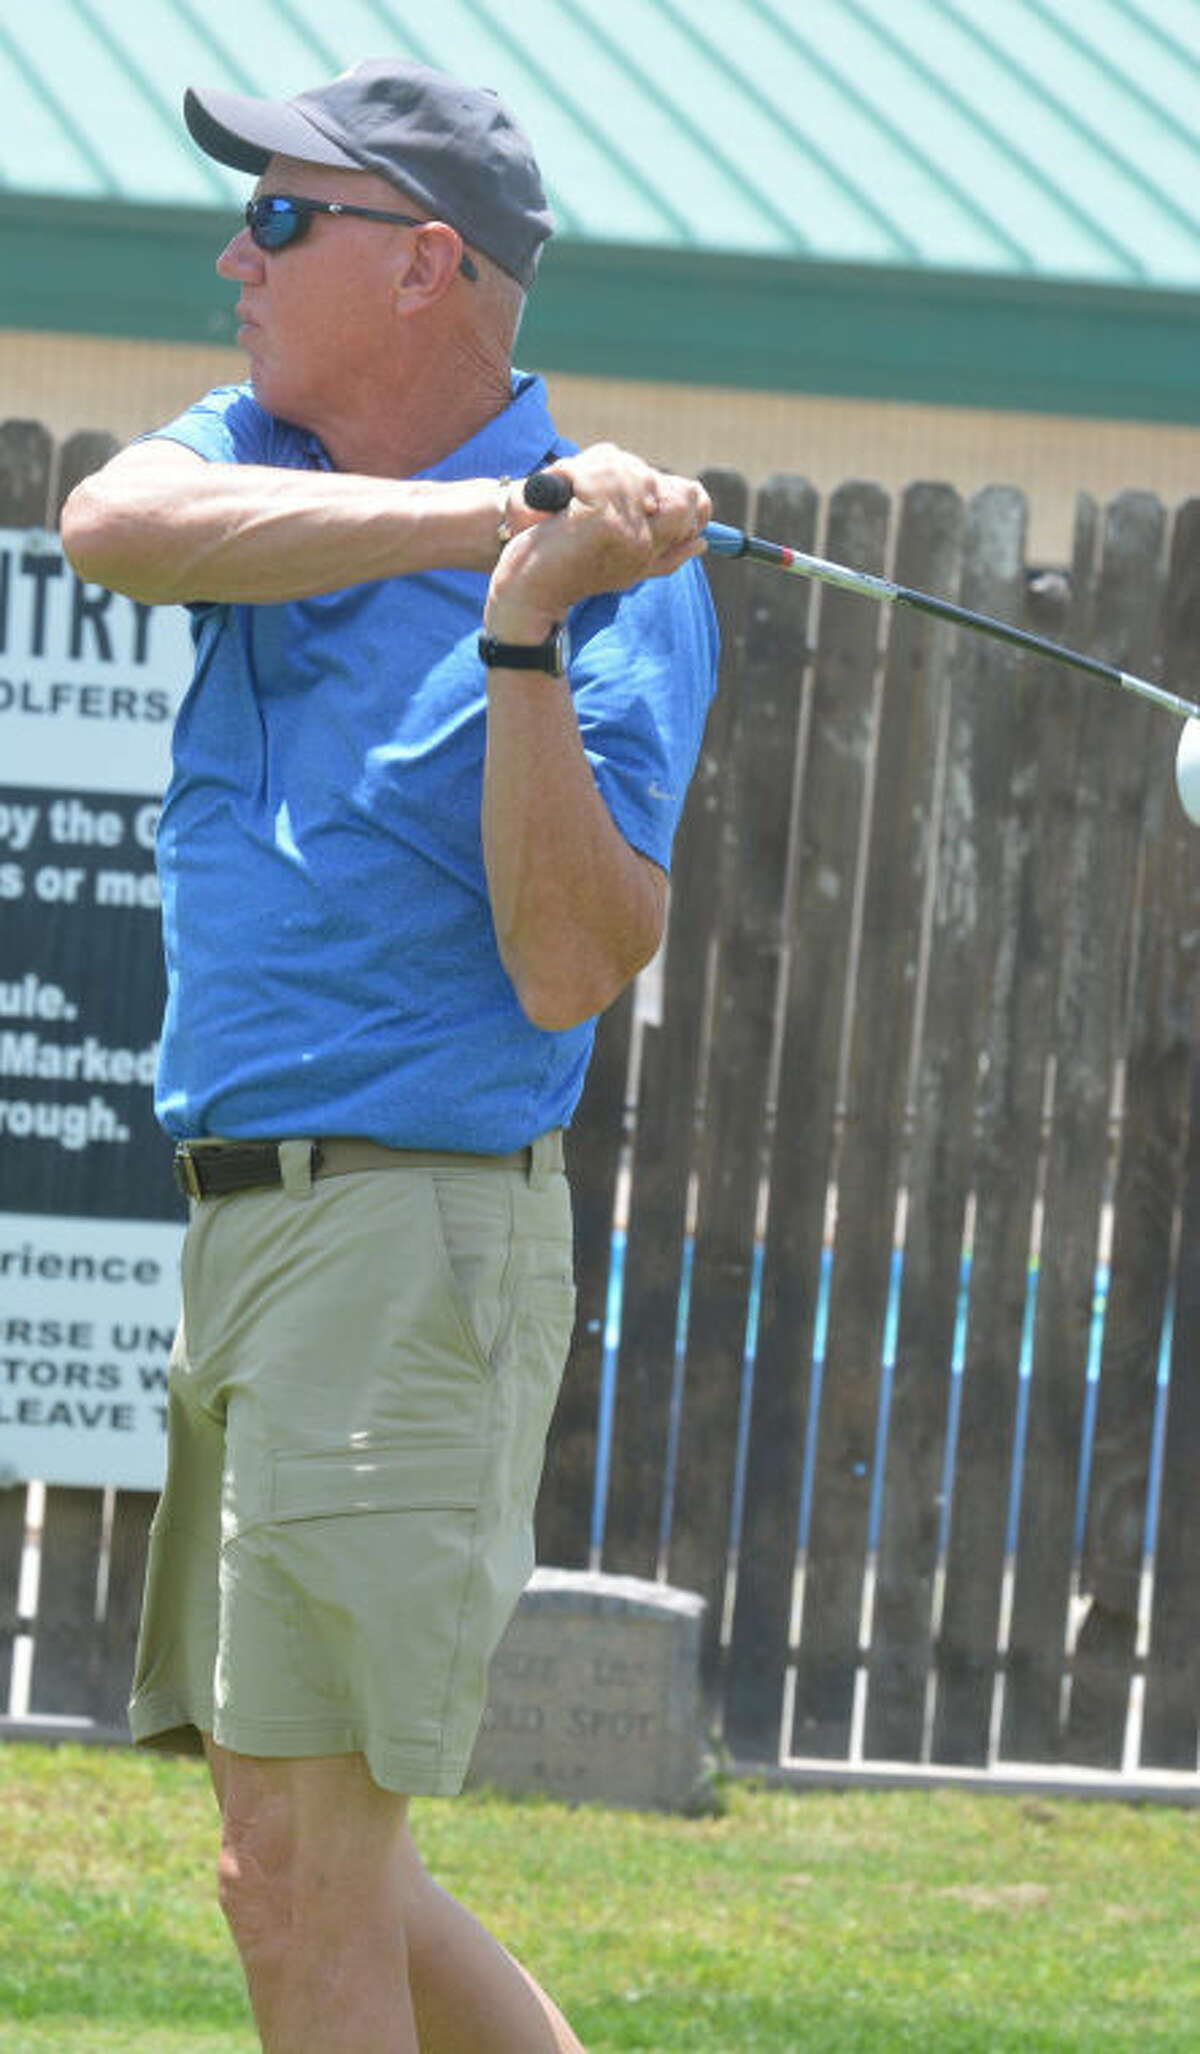 Chris Scott tees off on No. 1 during the first round of the Jack Williams Invitational Golf Tournament at Plainview Country Club Friday. Scott and his teammate, Kevin Parker, carded a 71 to lead the fourth flight by two strokes after the opening round. The tournament continued Saturday and will conclude on Sunday.